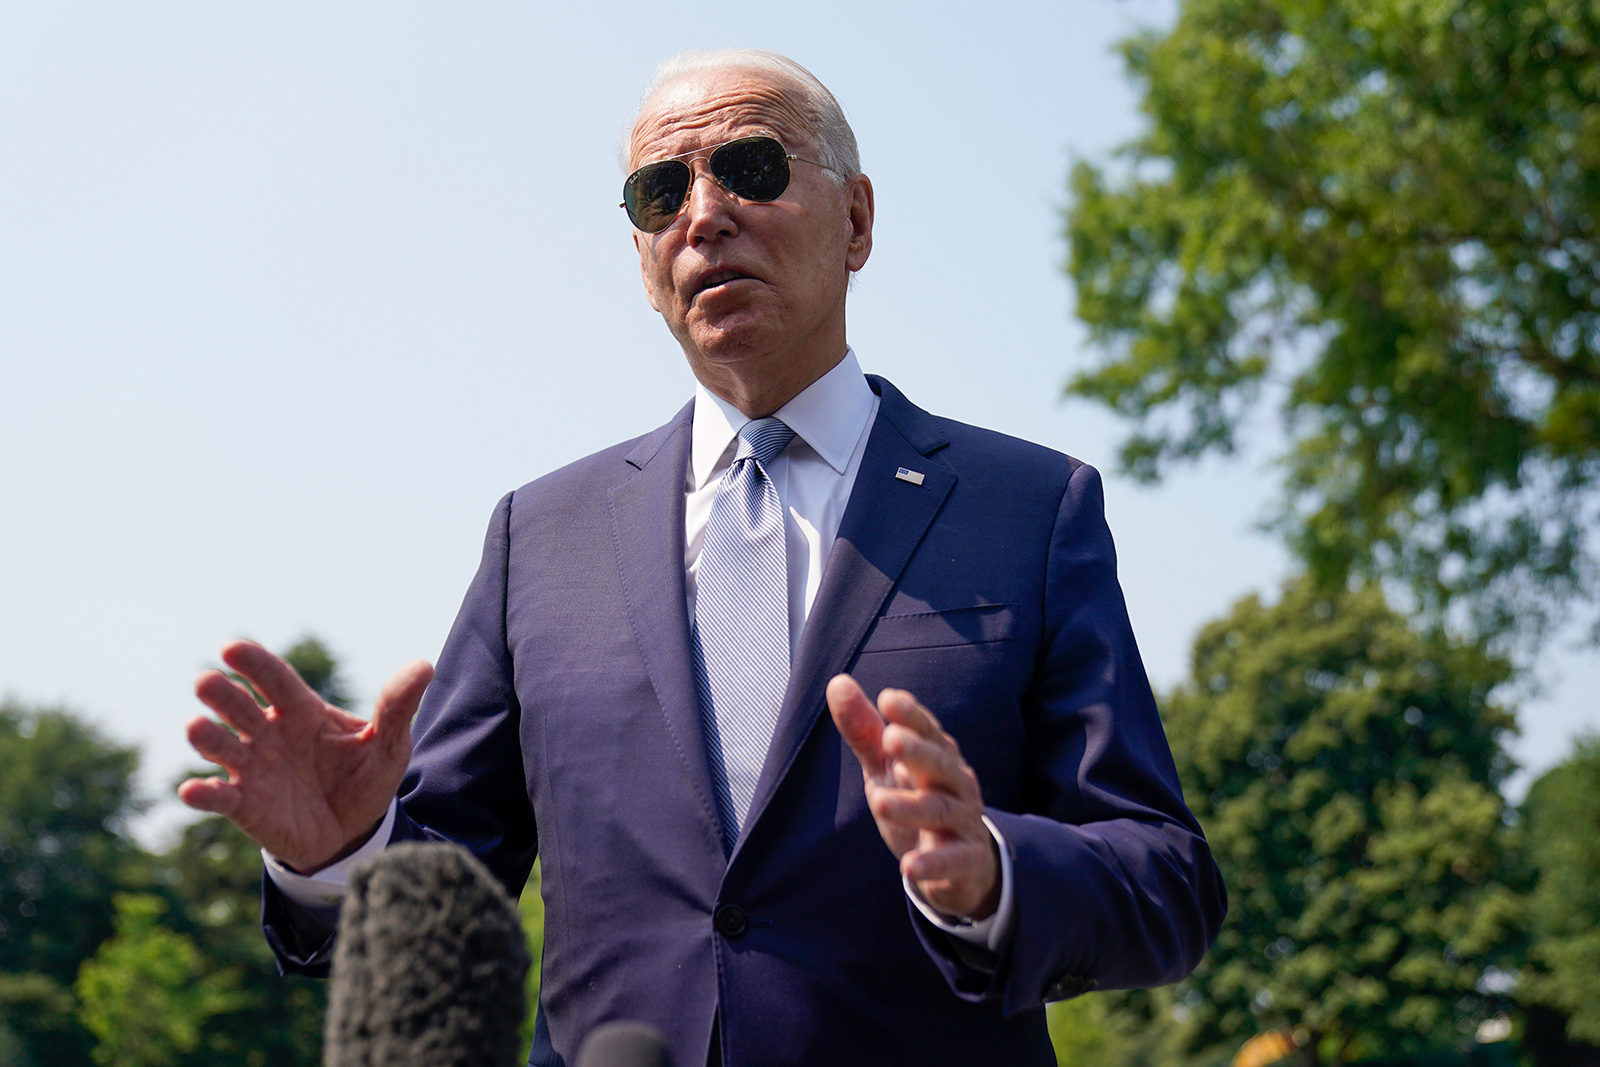 President Joe Biden talks to reporters before boarding Marine One on the South Lawn of the White House in Washington, Wednesday, July 7, 2021, for a short trip to Andrews Air Force Base, Md., and then on to Illinois. (AP Photo/Andrew Harnik)